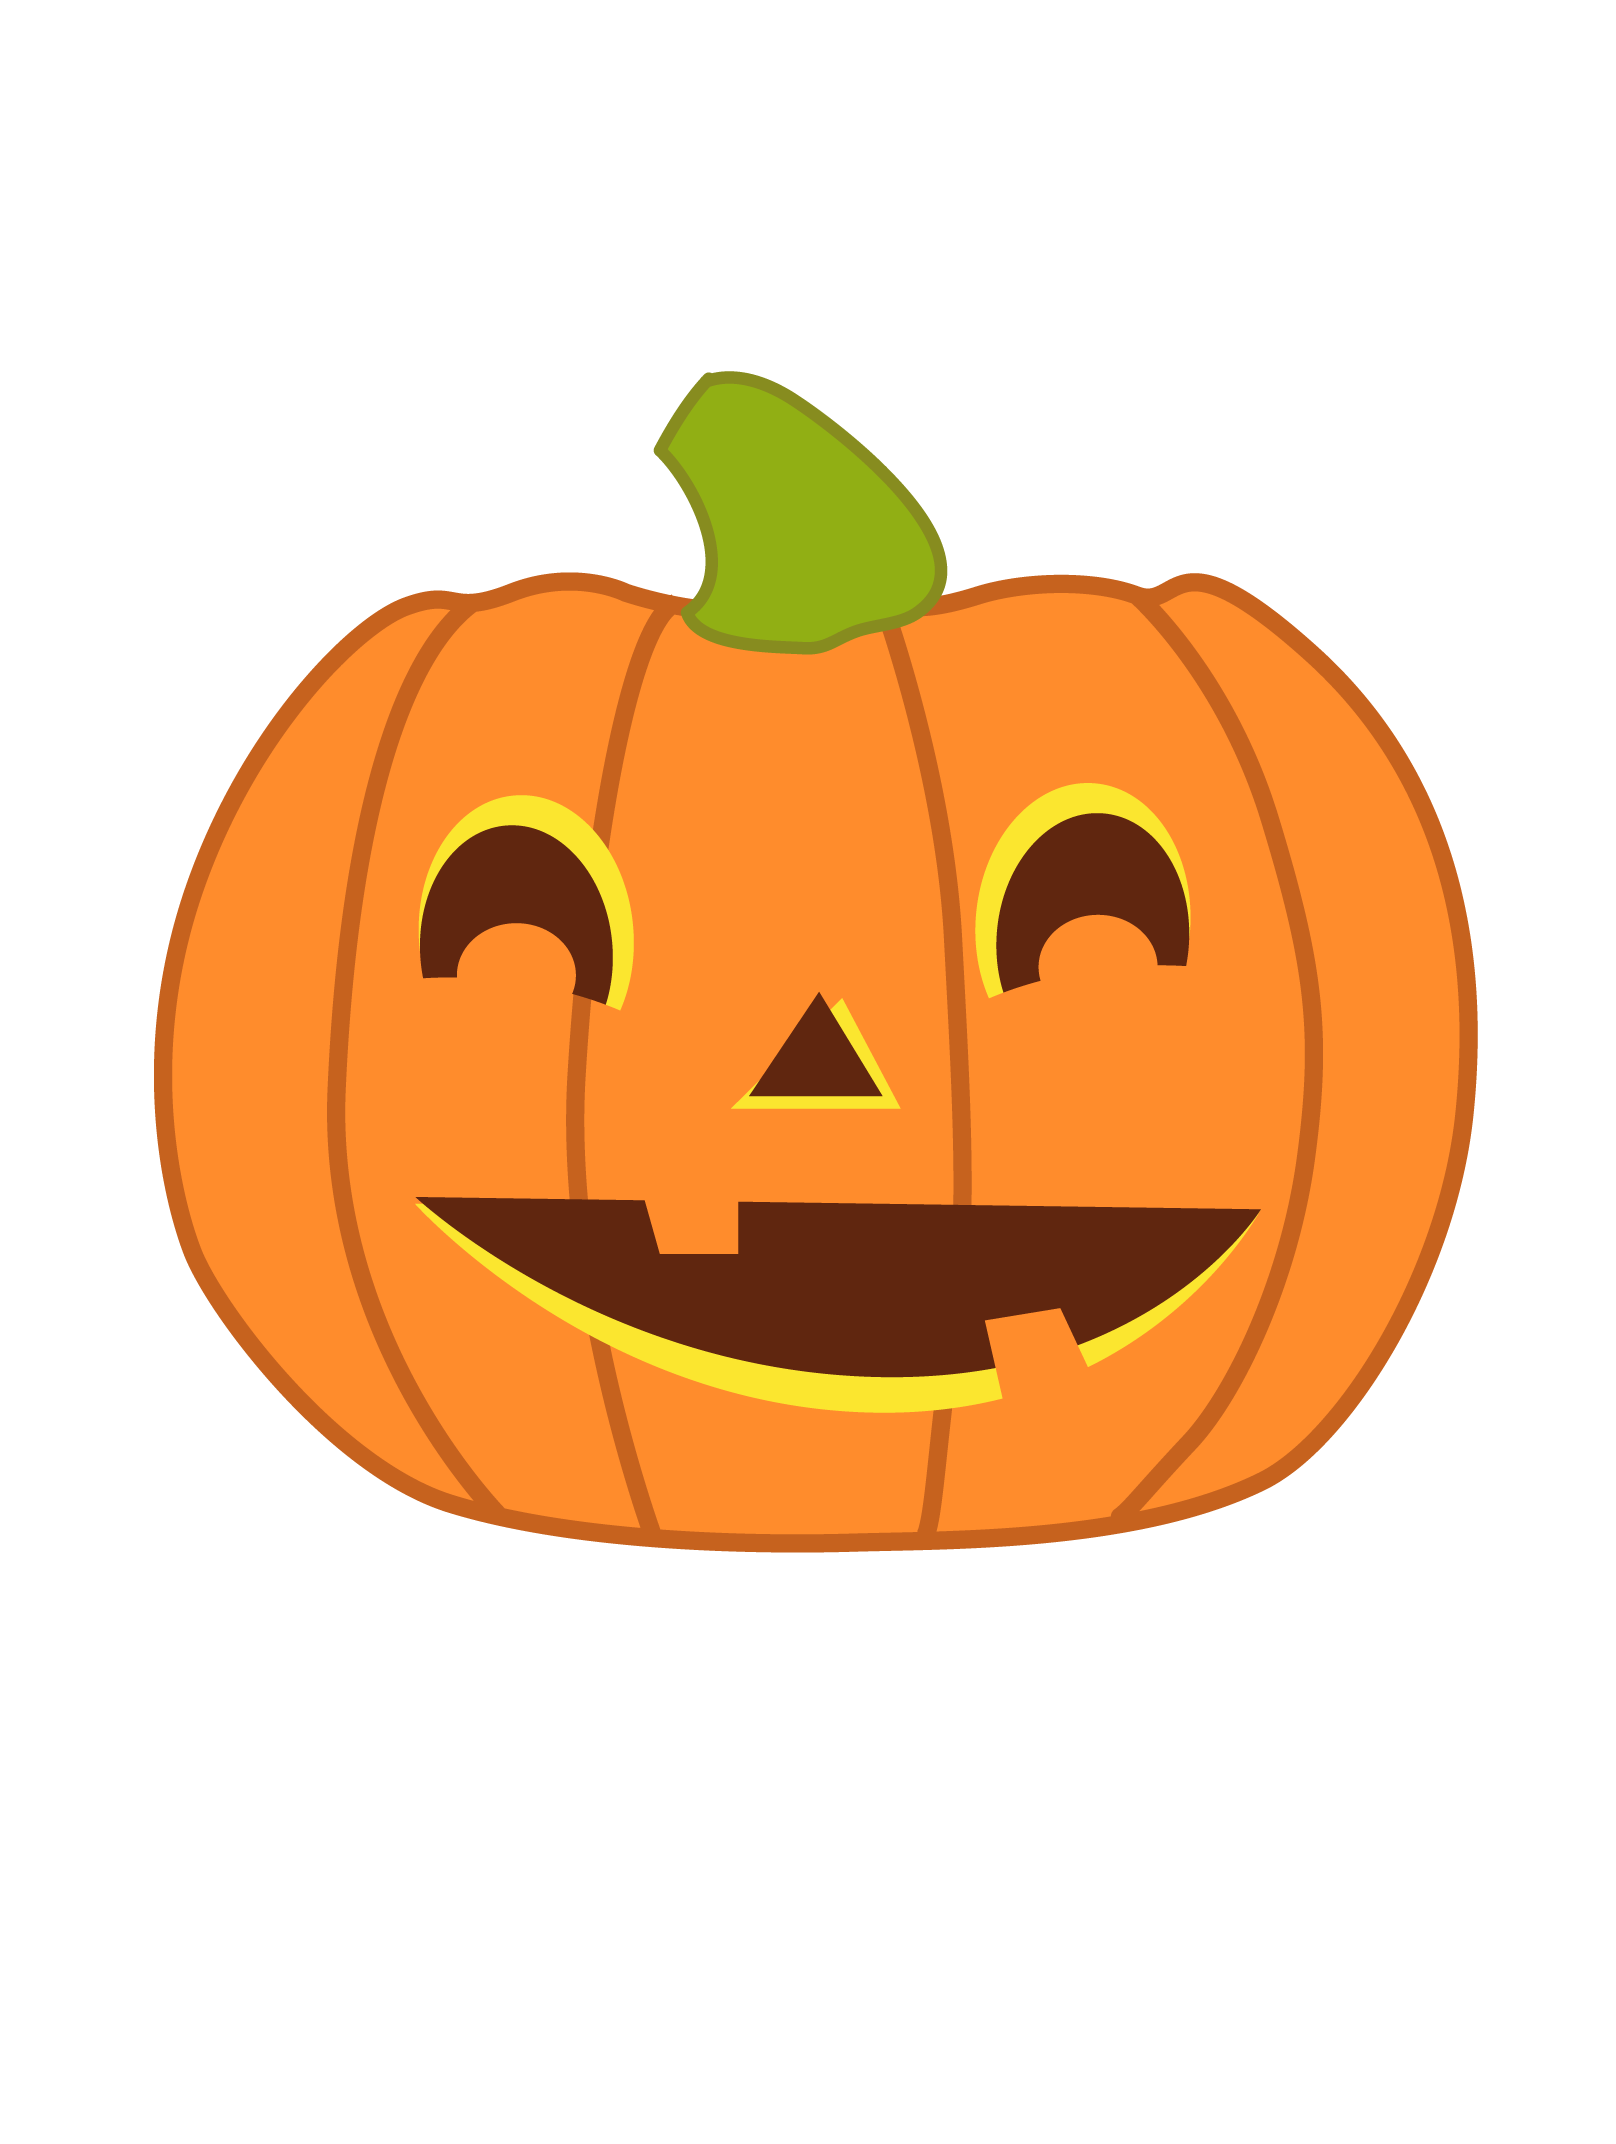 Cute halloween pumpkin.